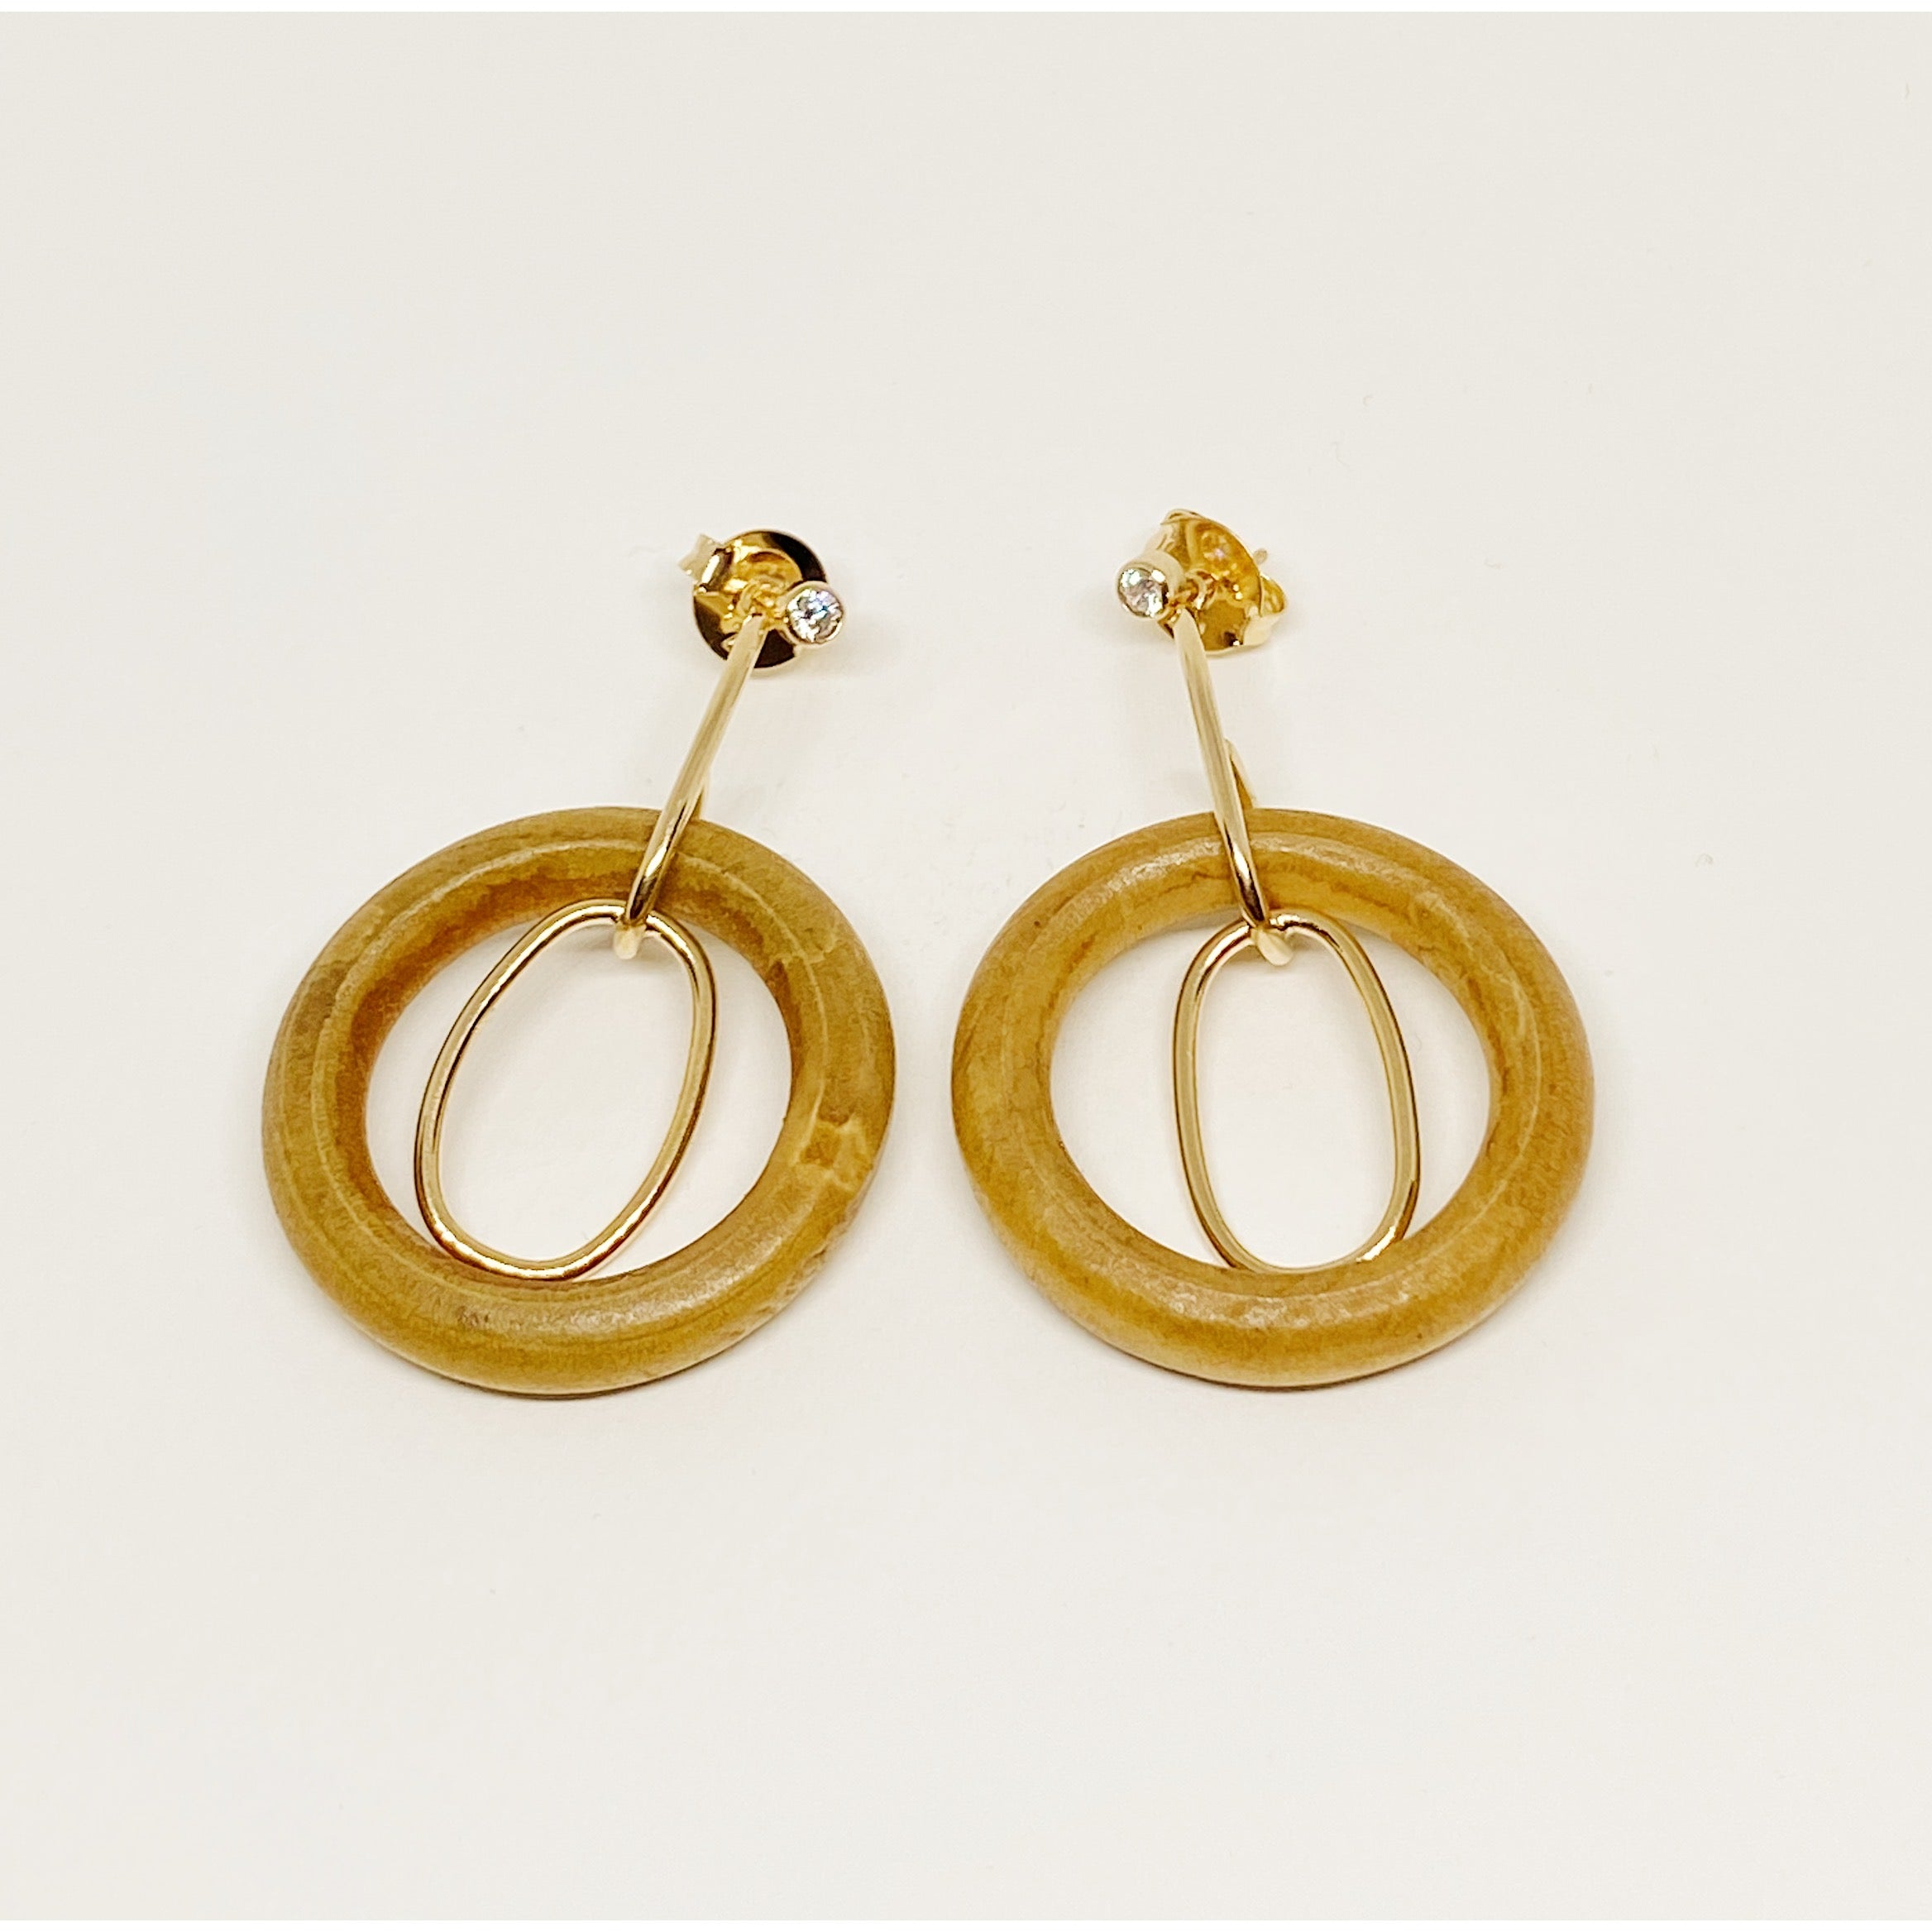 Wood, Stone and Gold earrings